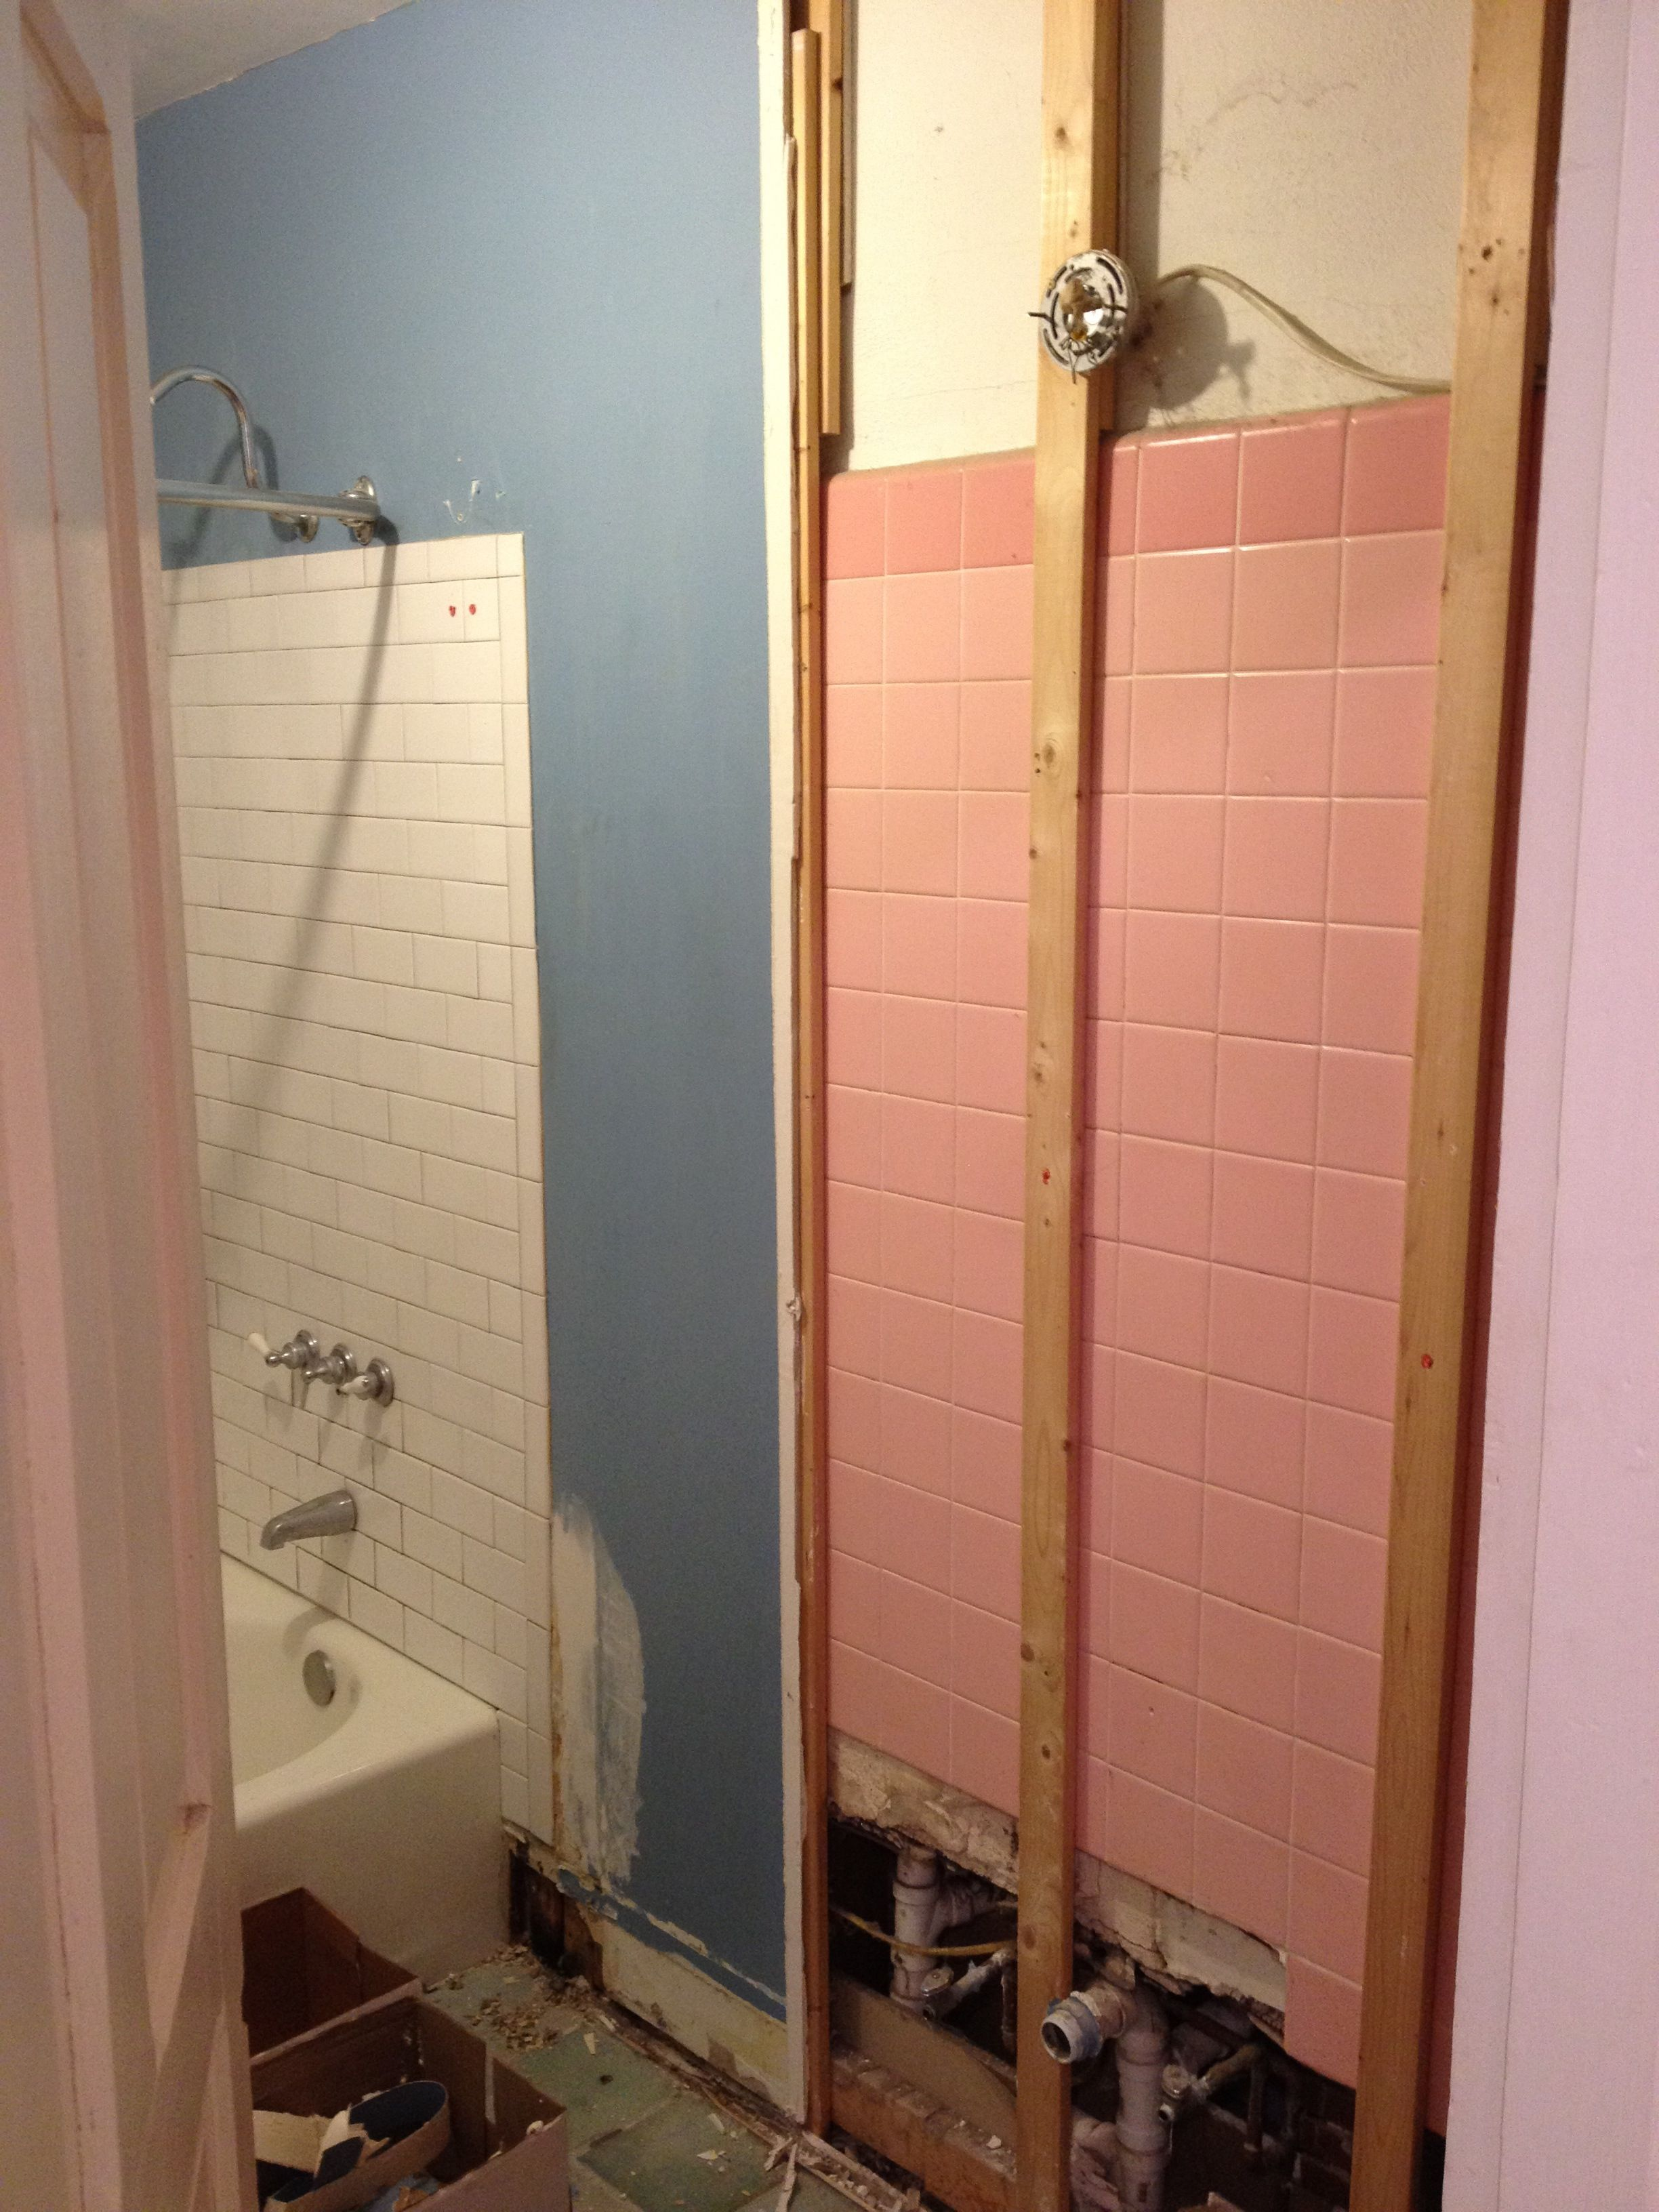 Twice The Work Half The Fun Diy Bathroom Remodel House And Bath - Gutting a bathroom